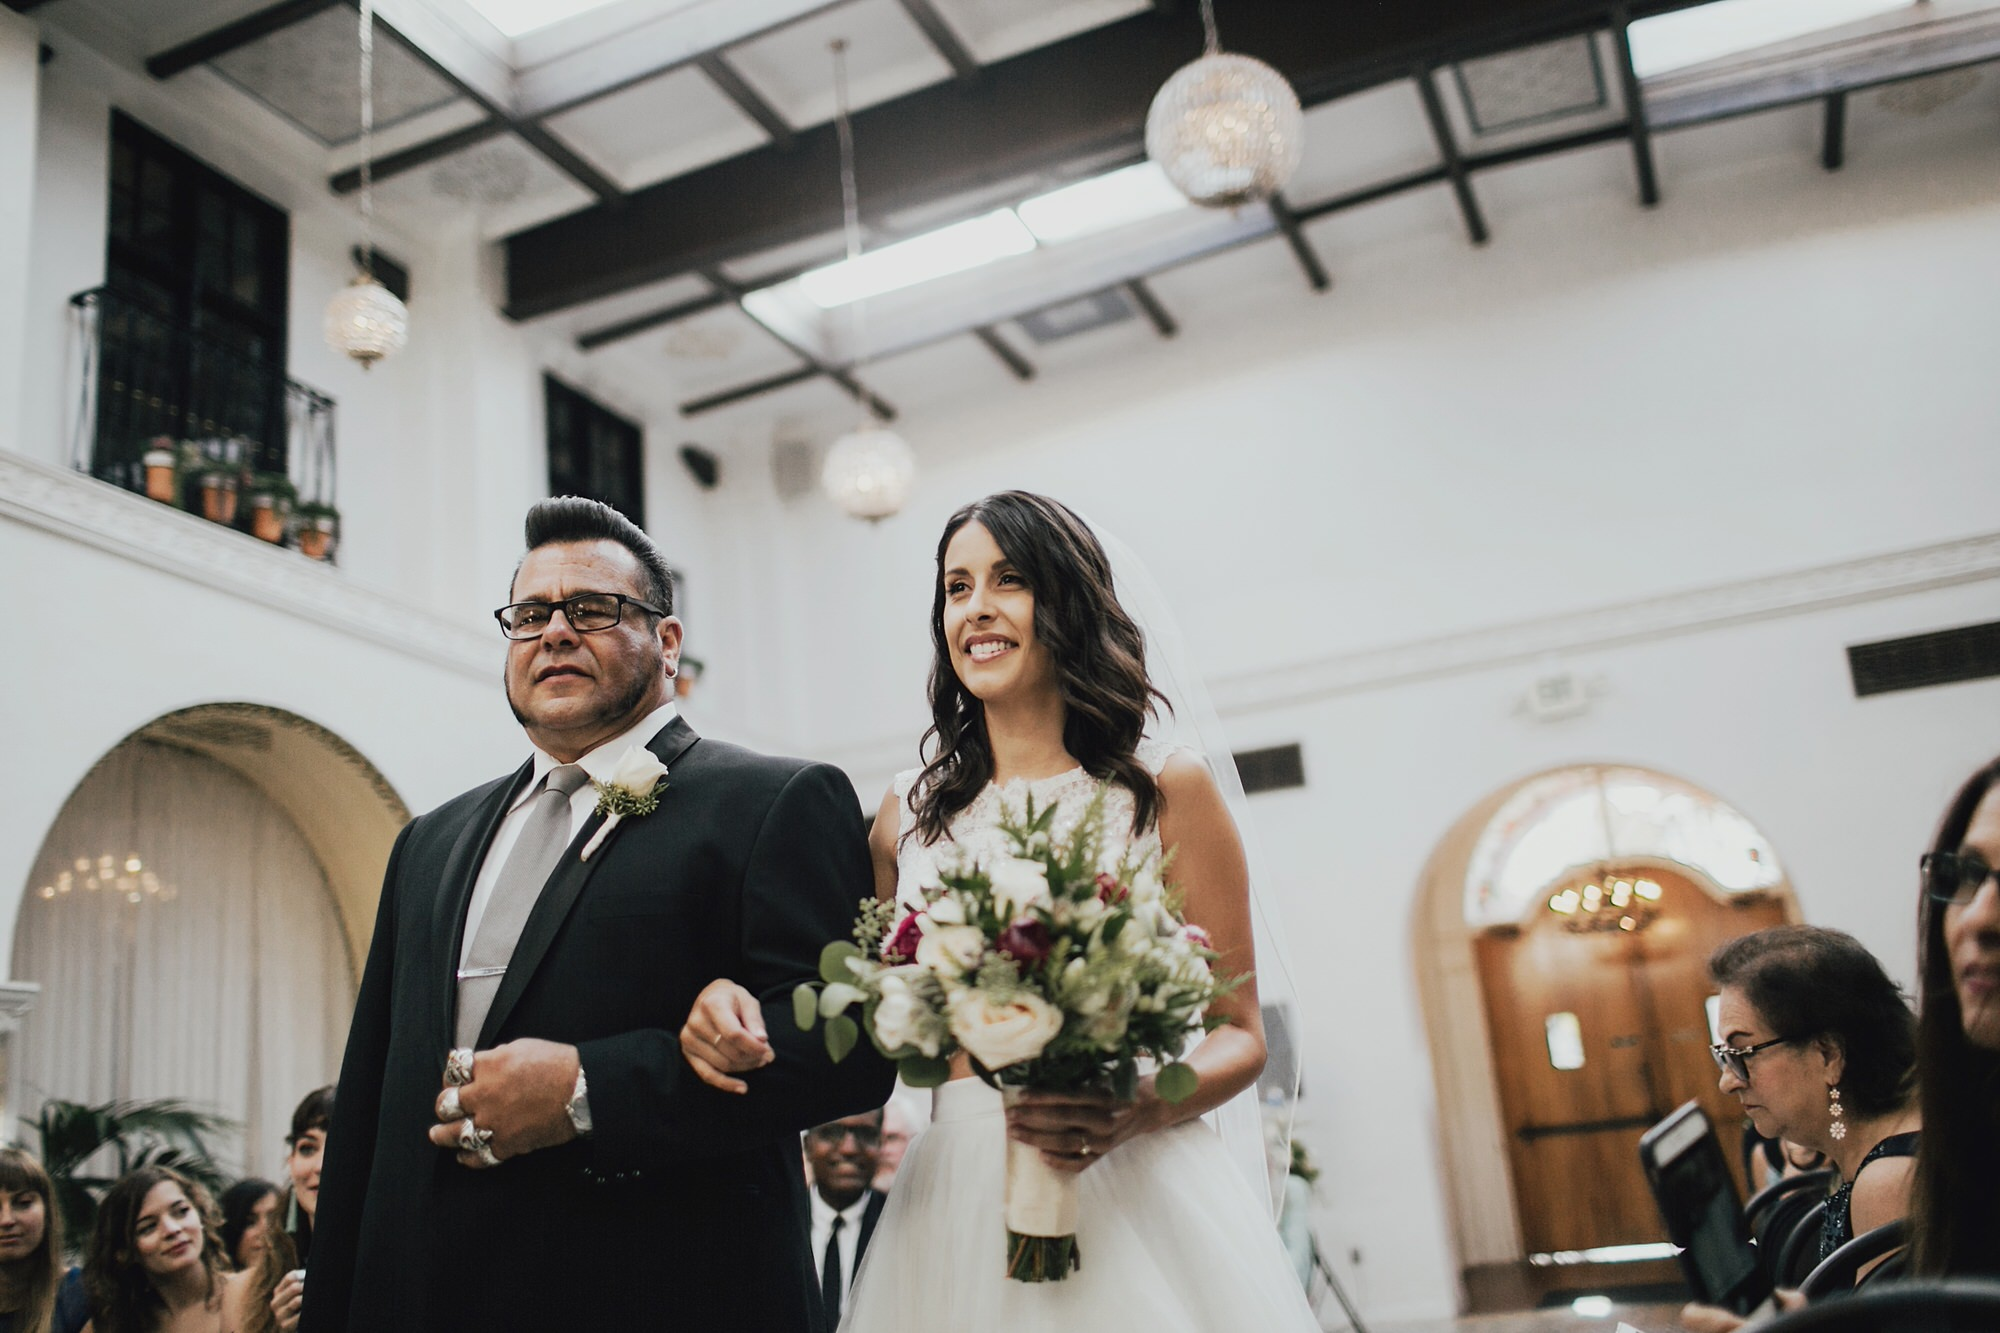 christine walking down the aisle with her dad